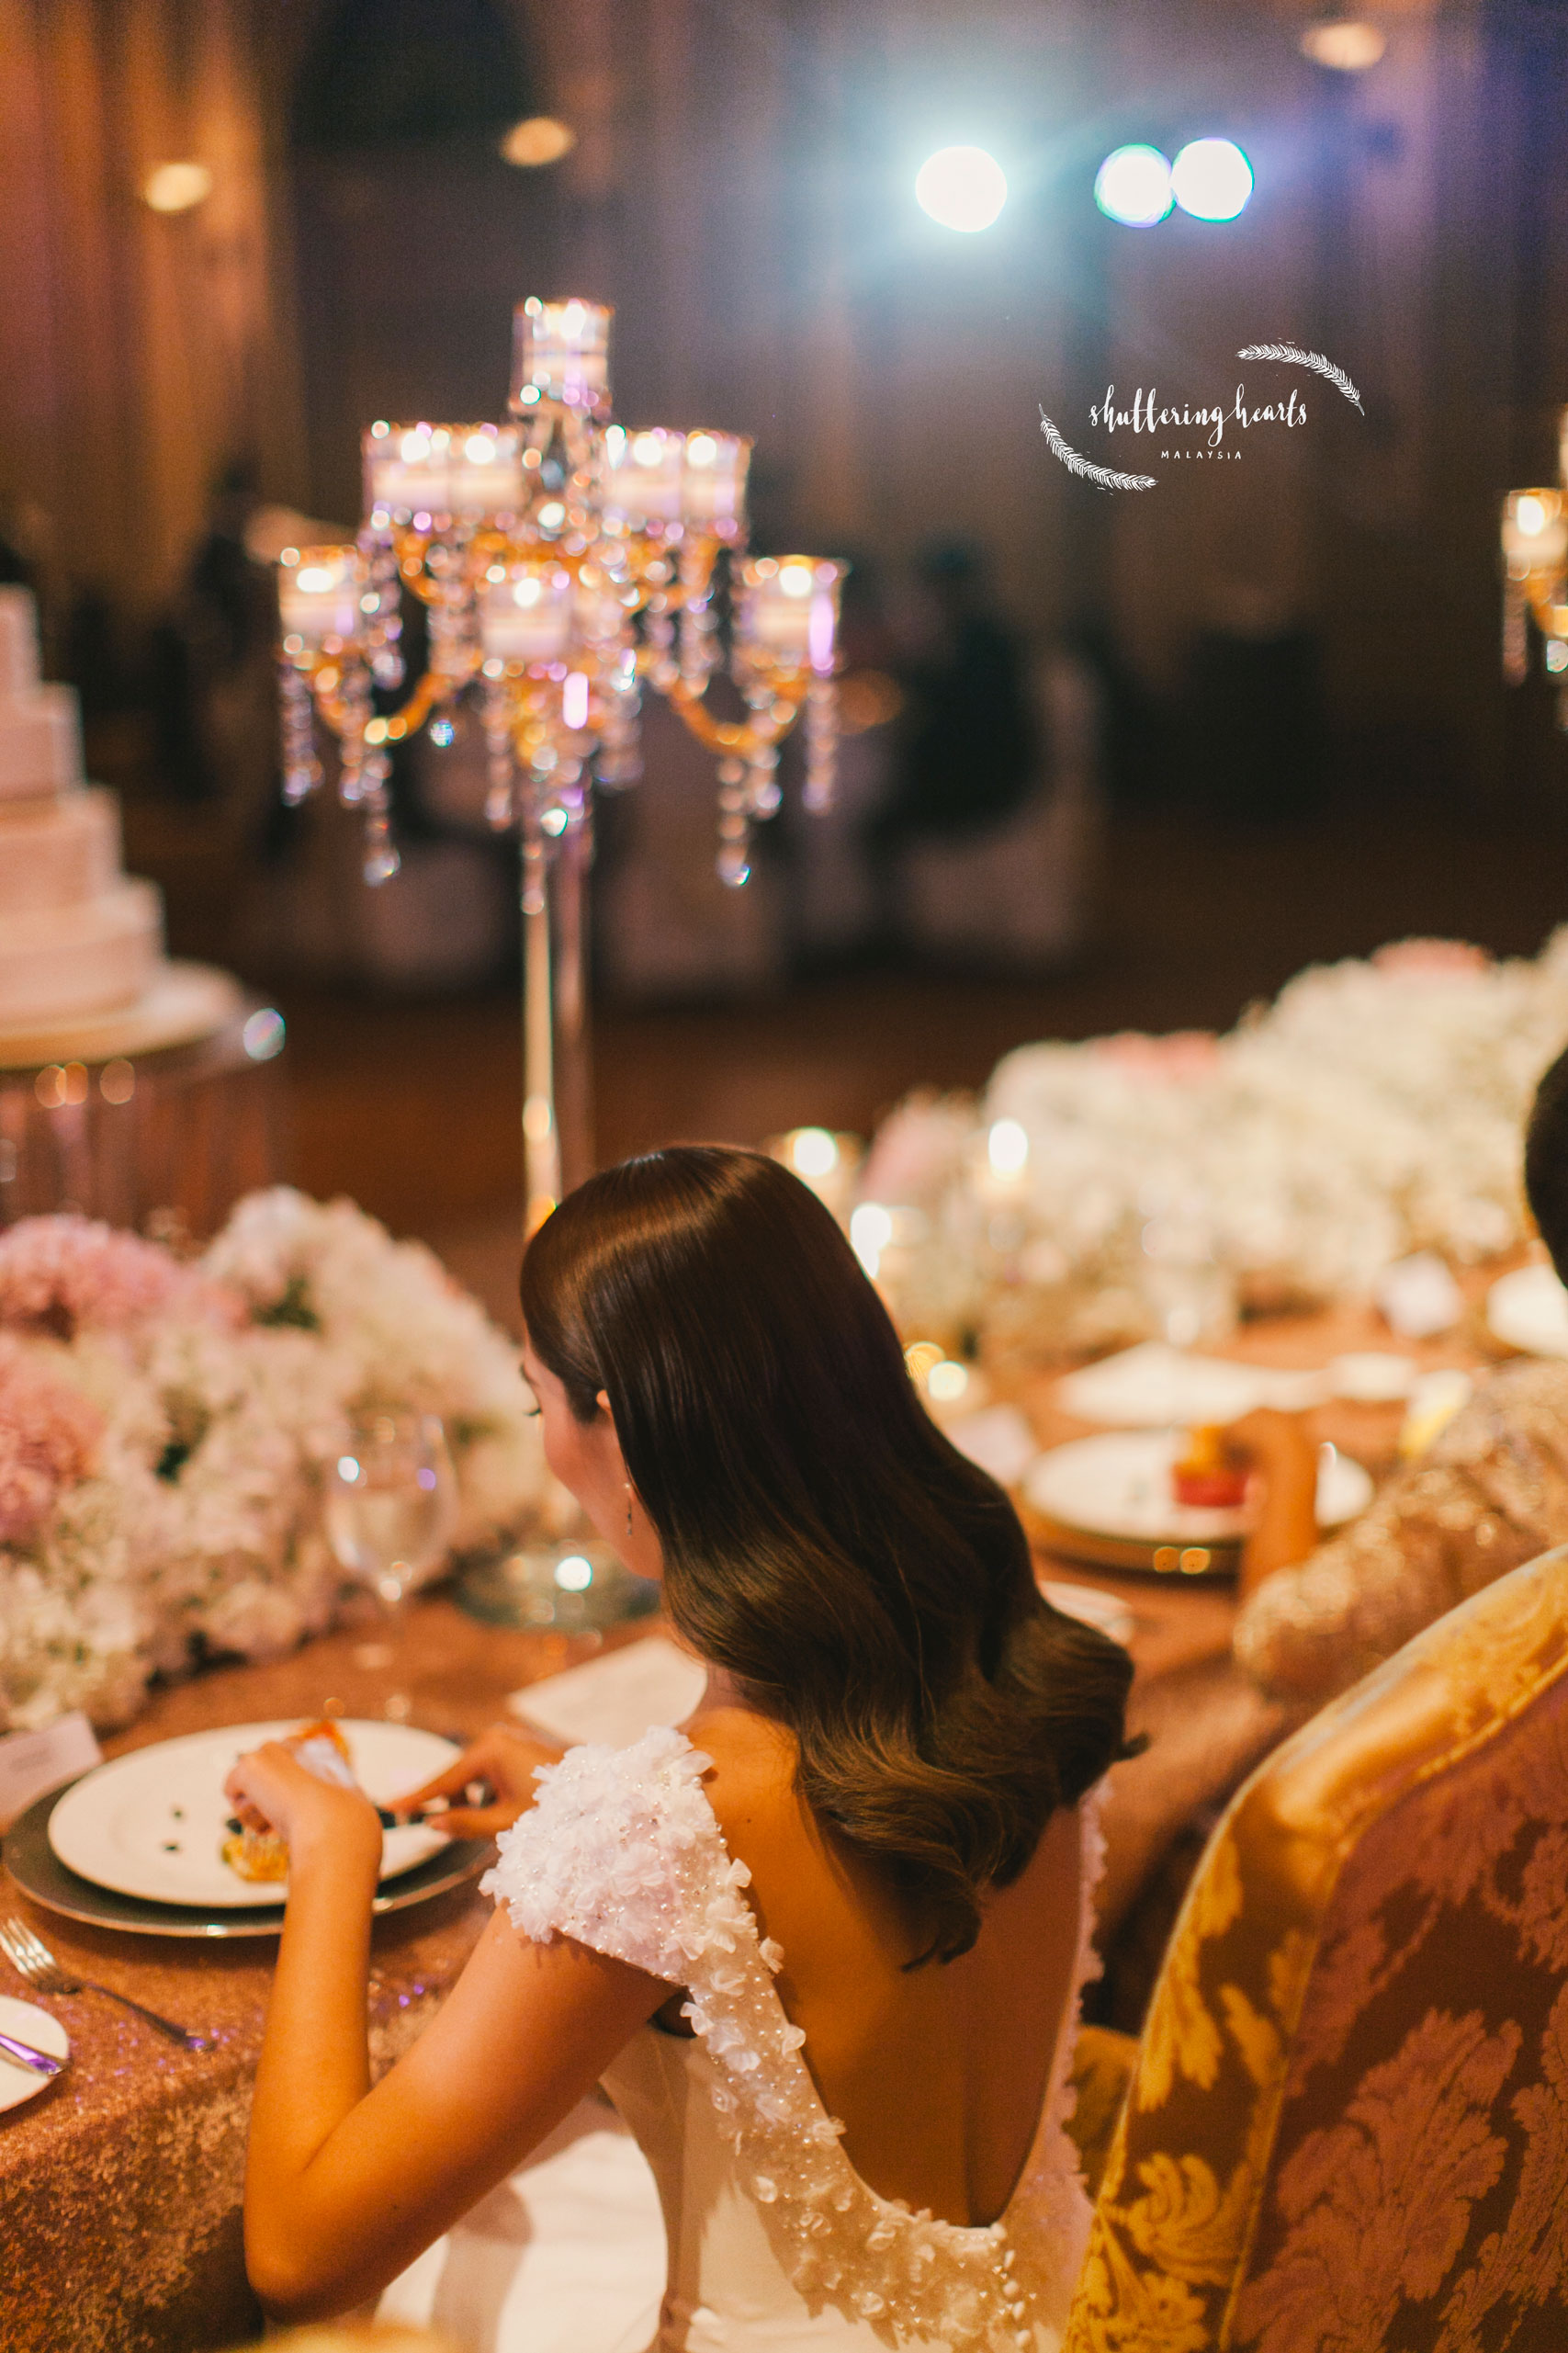 SS2 Wedding Photographer Malaysia Best Wedding Photography | Shuttering Hearts